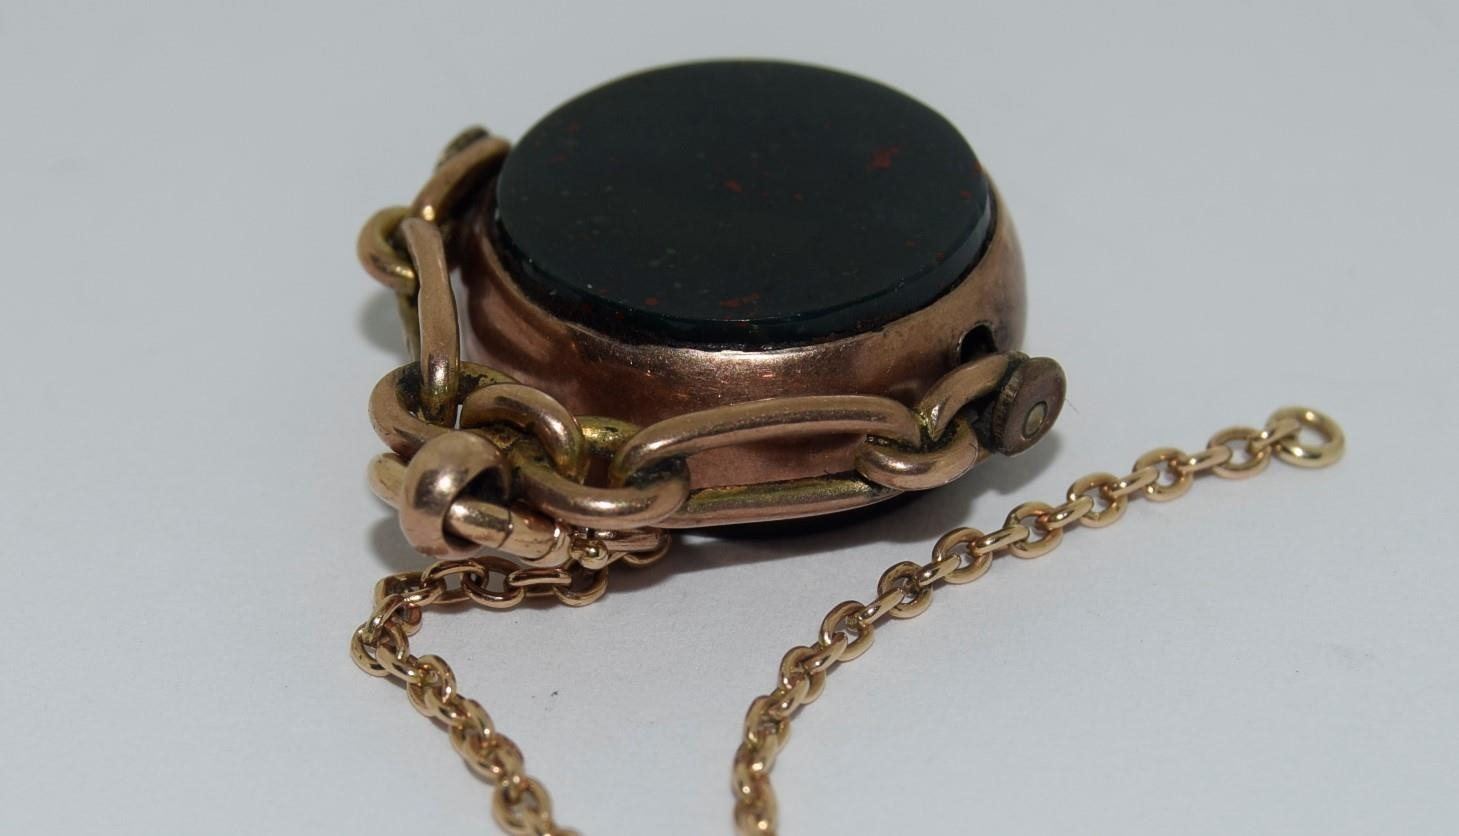 9ct gold ladies watch and strap together an agate watch fob - Image 8 of 9